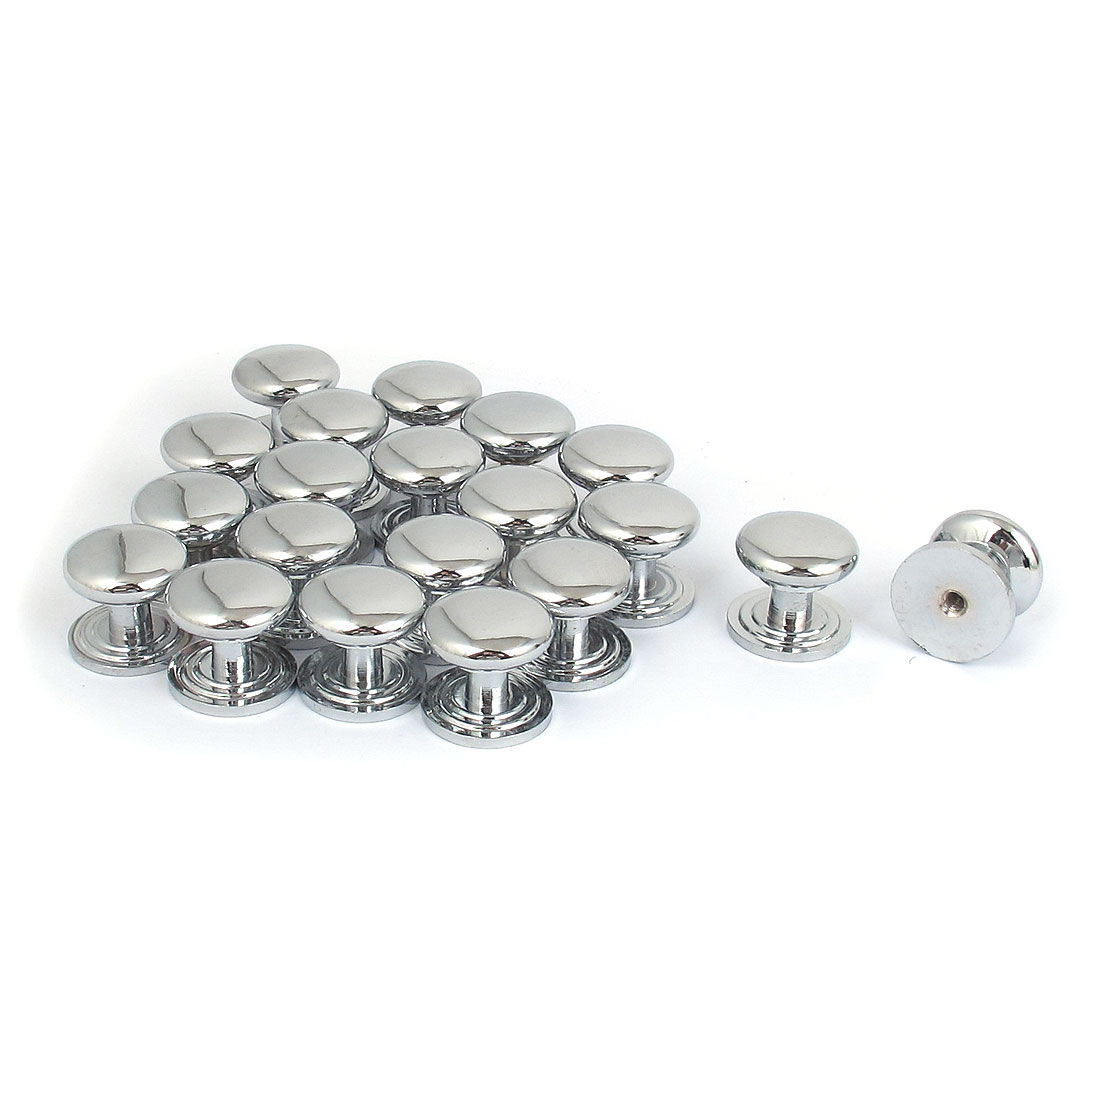 22mmx20mm Furniture Kitchen Cabinet Drawer Chrome Plated Pull Handle Knob 20pcs